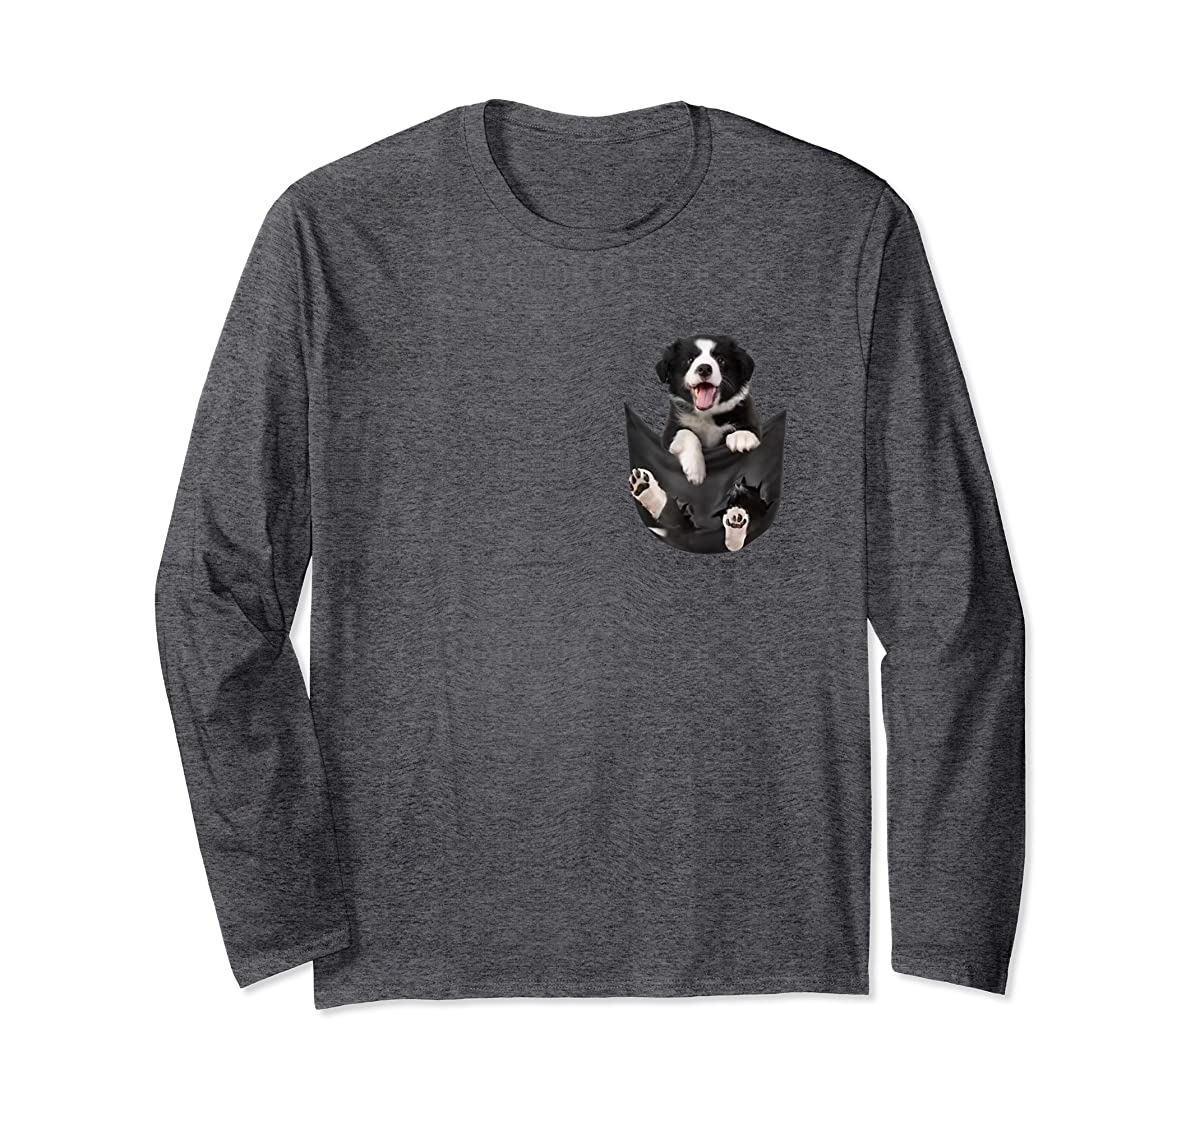 Border Collies Inside In Pocket Dog Lover T shirt Funny Cute-Long Sleeve-Dark Heather